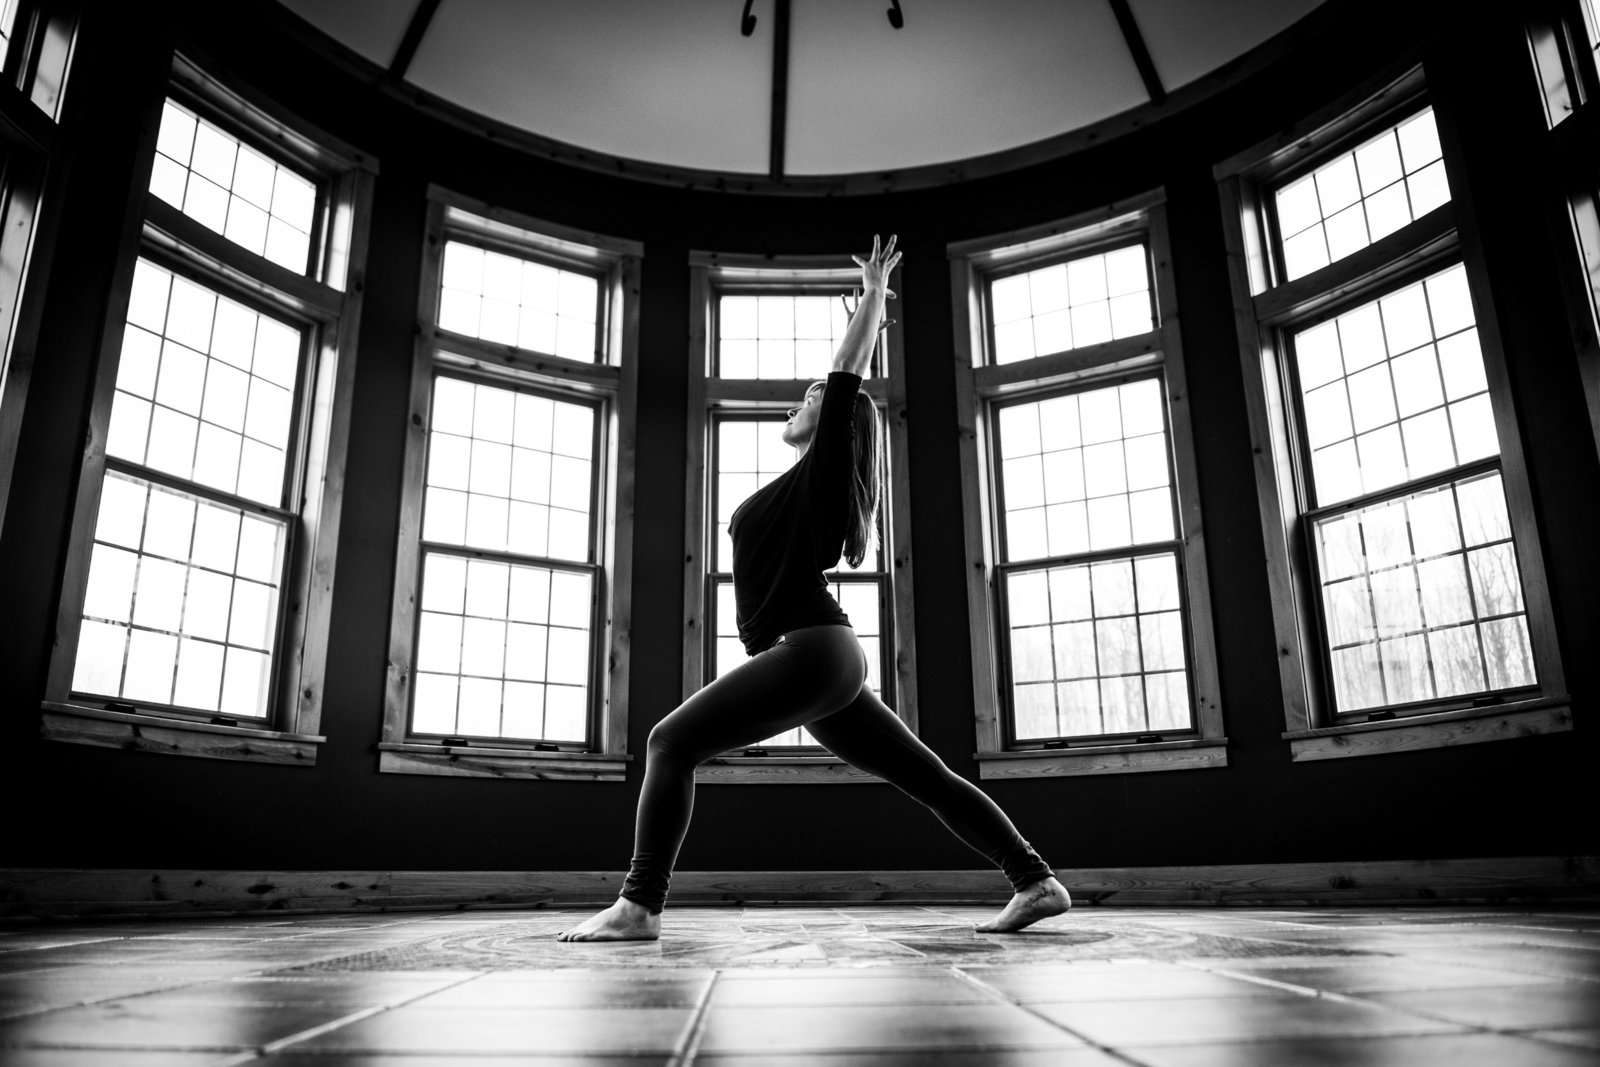 Black and white portrait of yoga instructor in Warrior 1 pose.